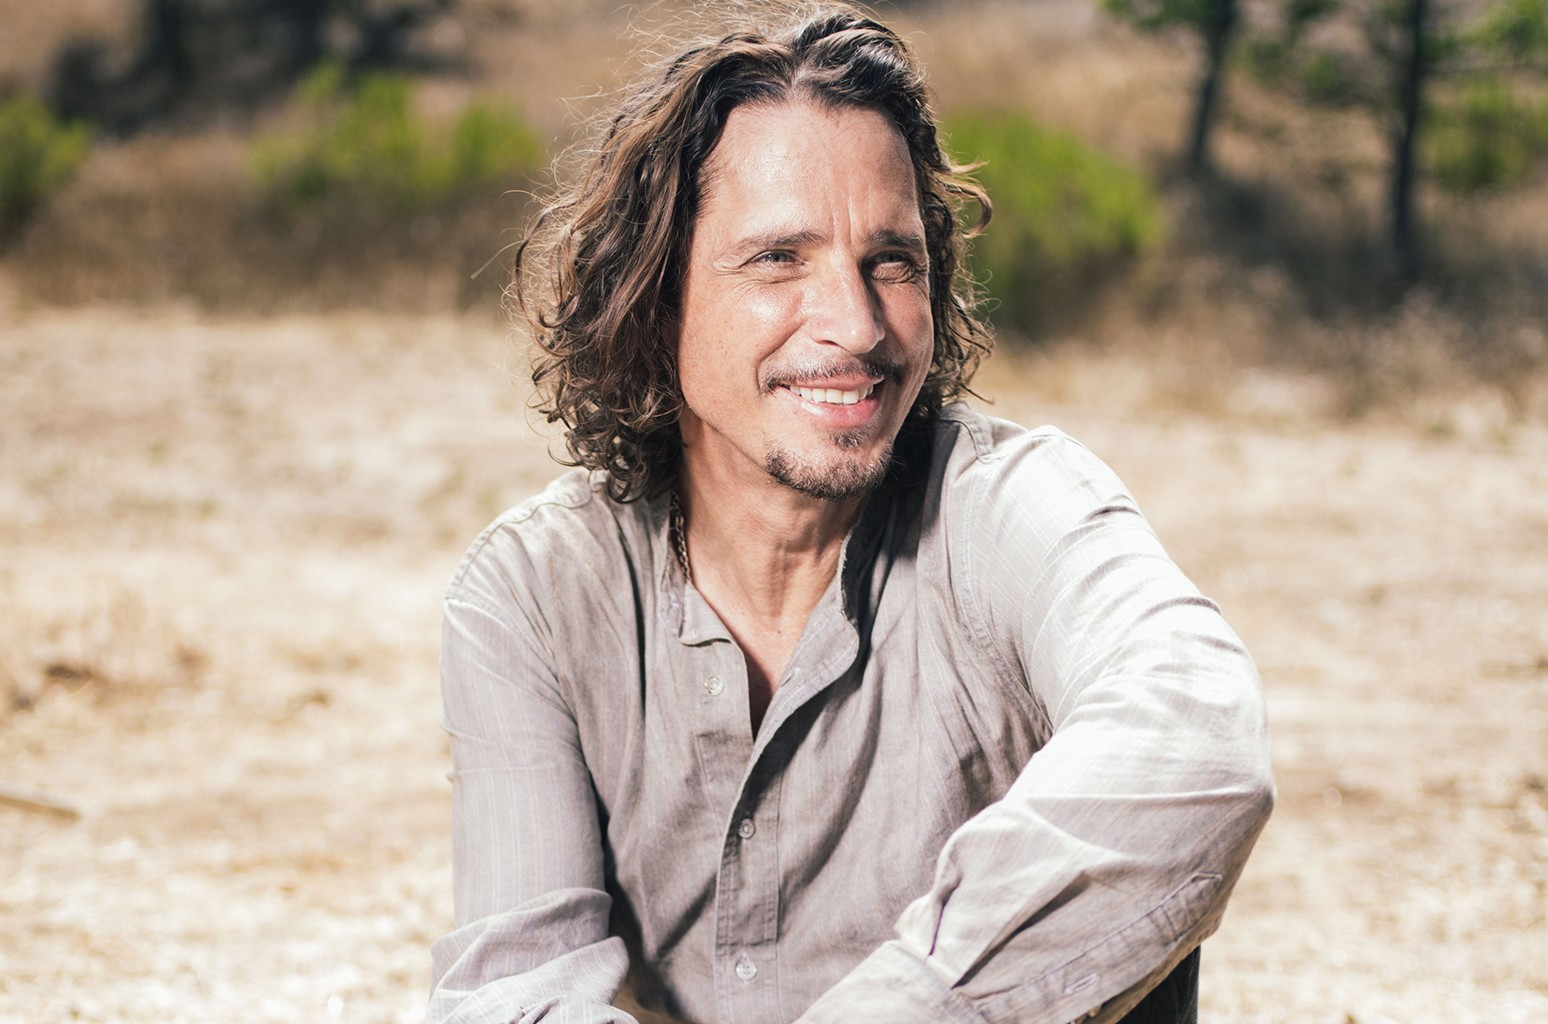 Chris Cornell poses for a portrait on July 29, 2015 at The Paramount Ranch in Agoura Hills, Calif.